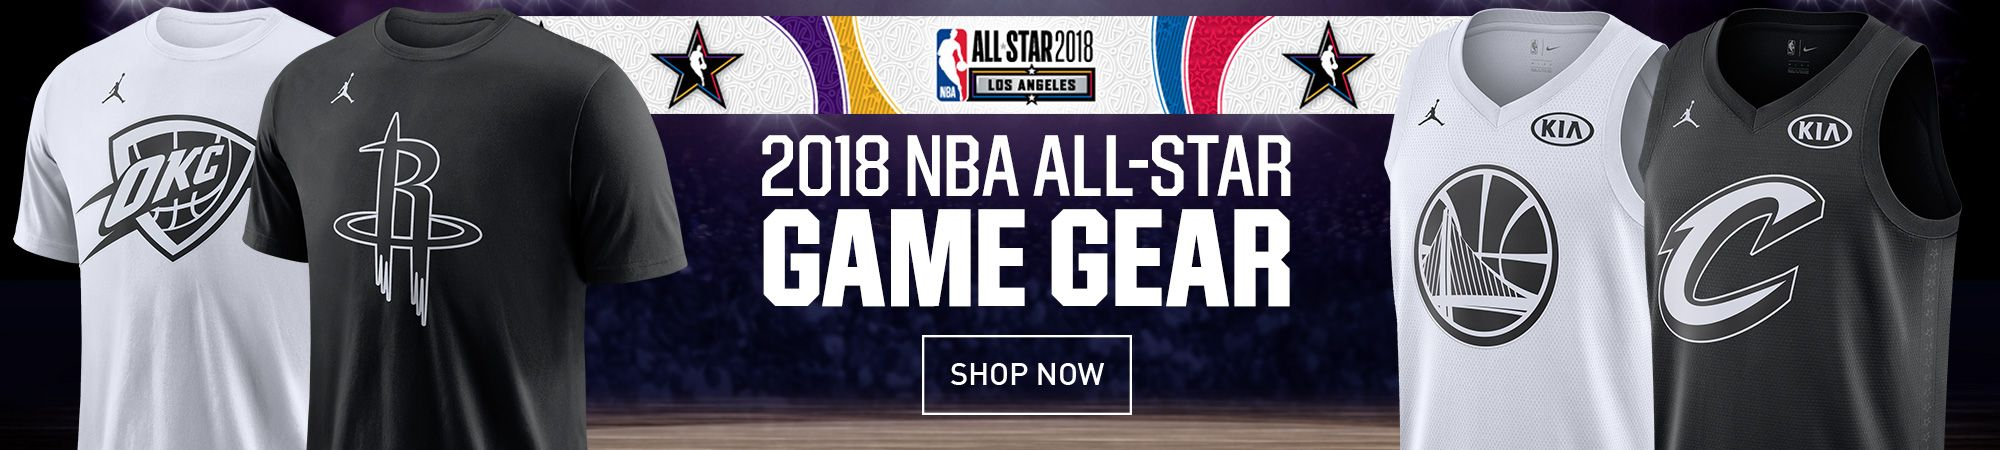 2018 NBA All Star Game Gear - Shop Now